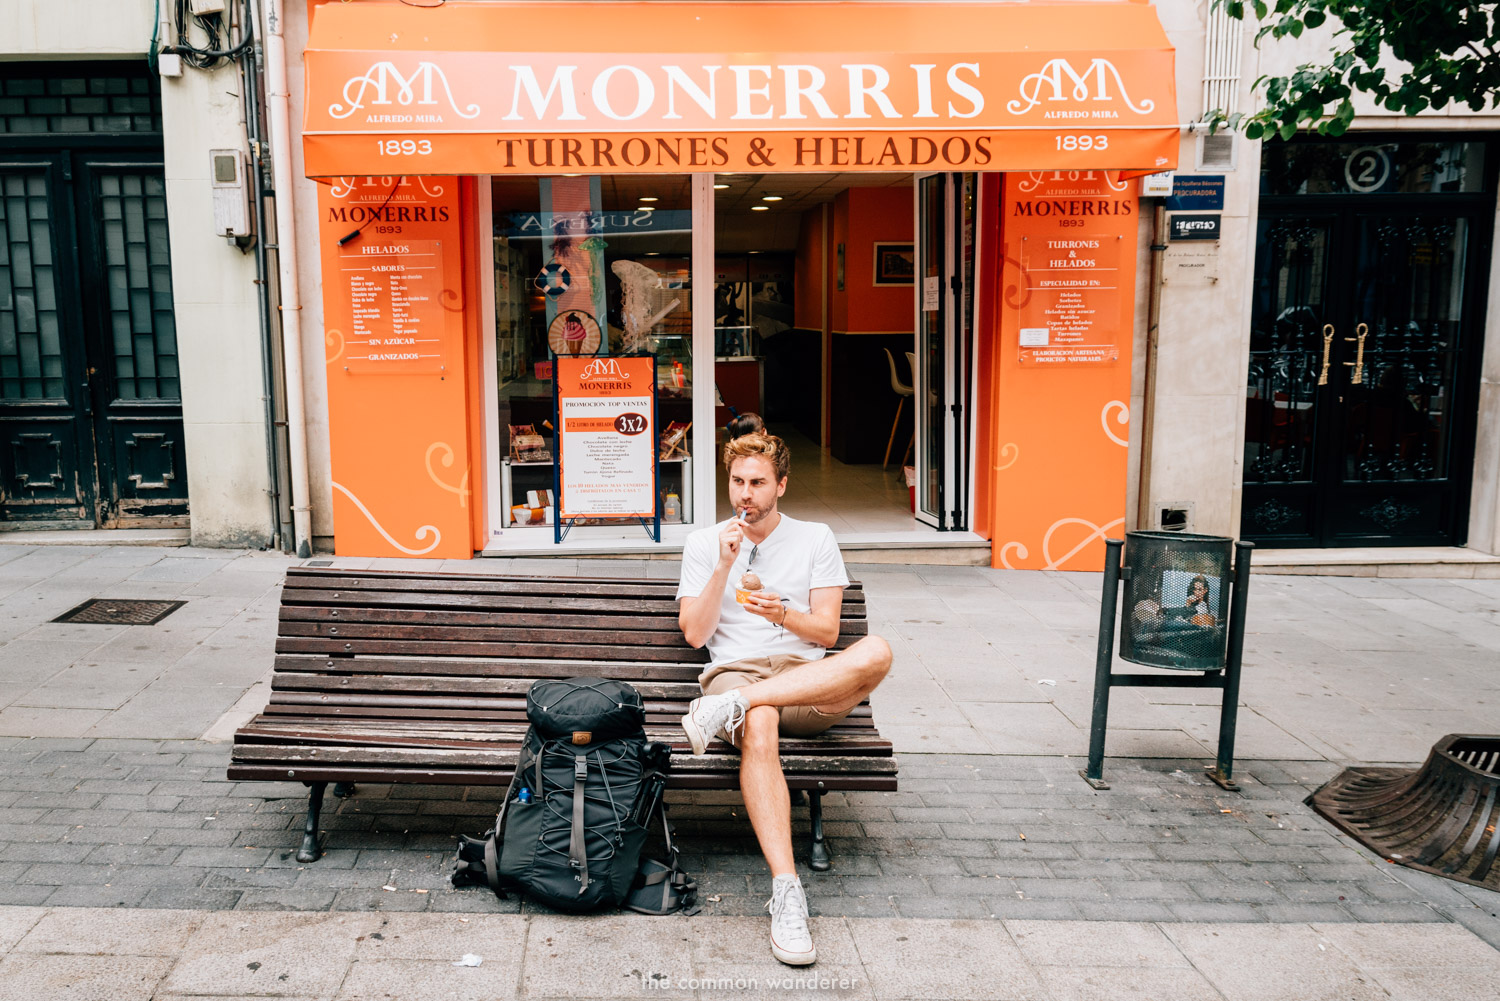 Santander Spain things to do-eat monerris ice cream